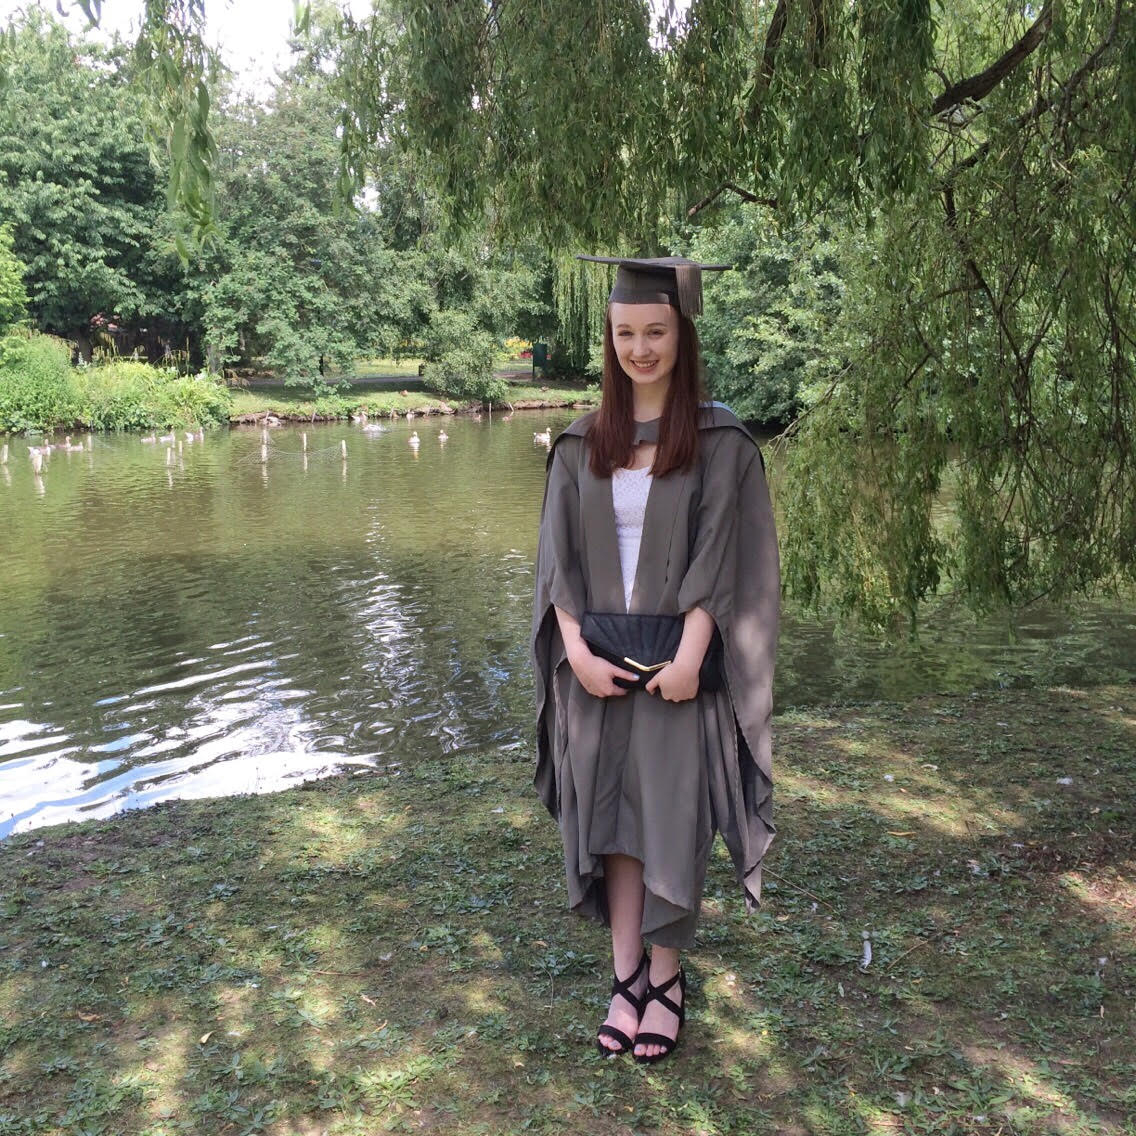 young woman wearing graduation cap and gown stood outdoors in front of trees and a lake